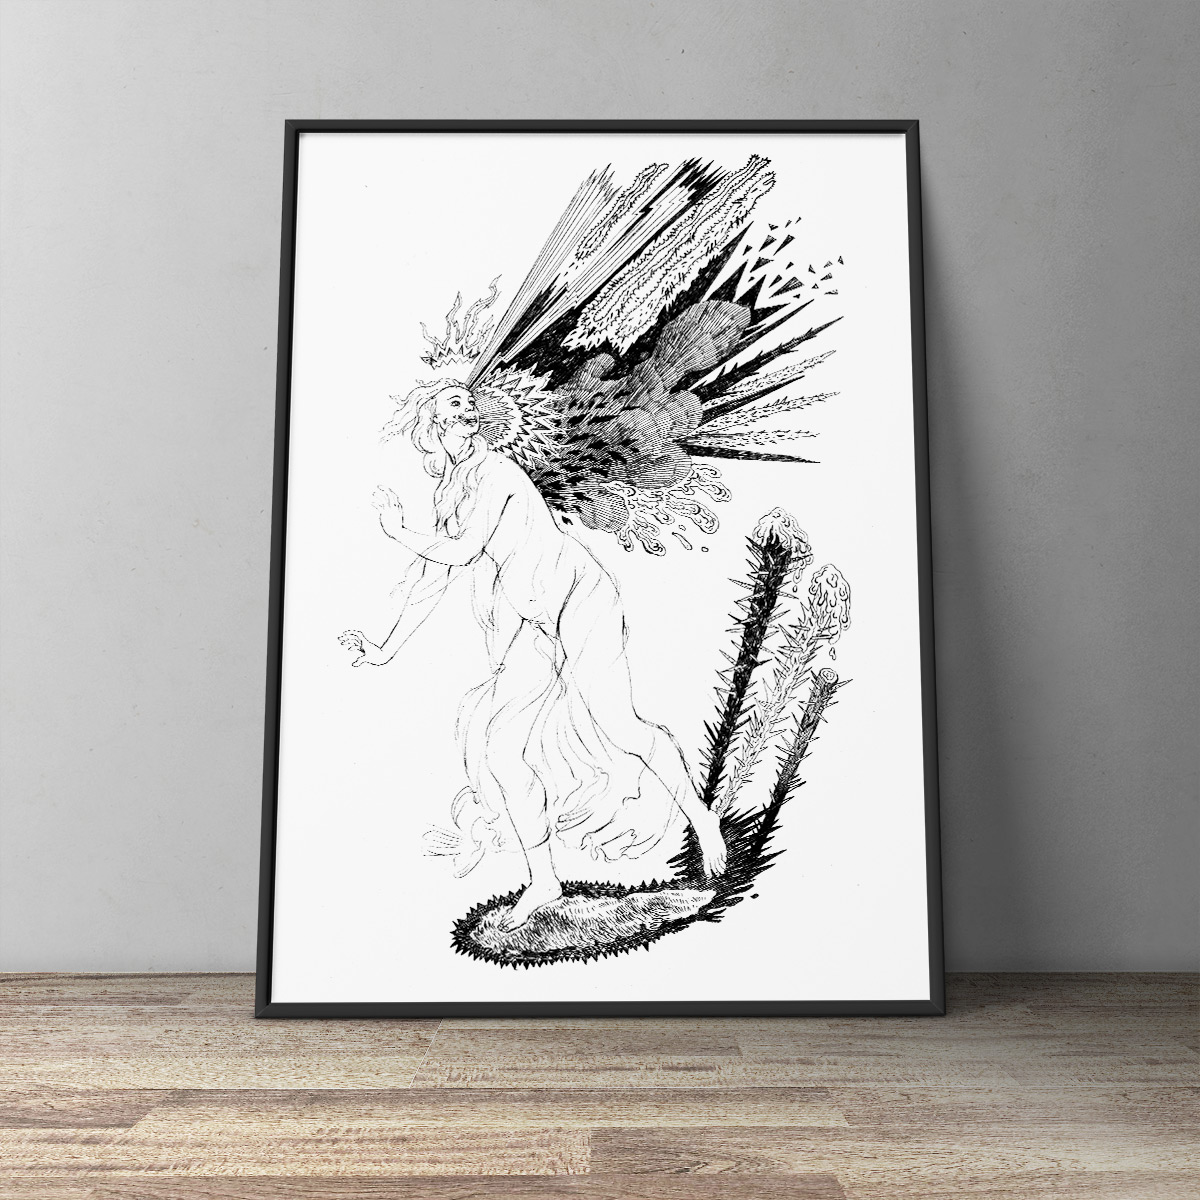 art-prints, gliceé, aesthetic, figurative, monochrome, portraiture, bodies, botany, patterns, sexuality, black, white, ink, paper, beautiful, black-and-white, copenhagen, danish, decorative, design, flowers, interior, interior-design, love, nordic, nude, scandinavien, Buy original high quality art. Paintings, drawings, limited edition prints & posters by talented artists.